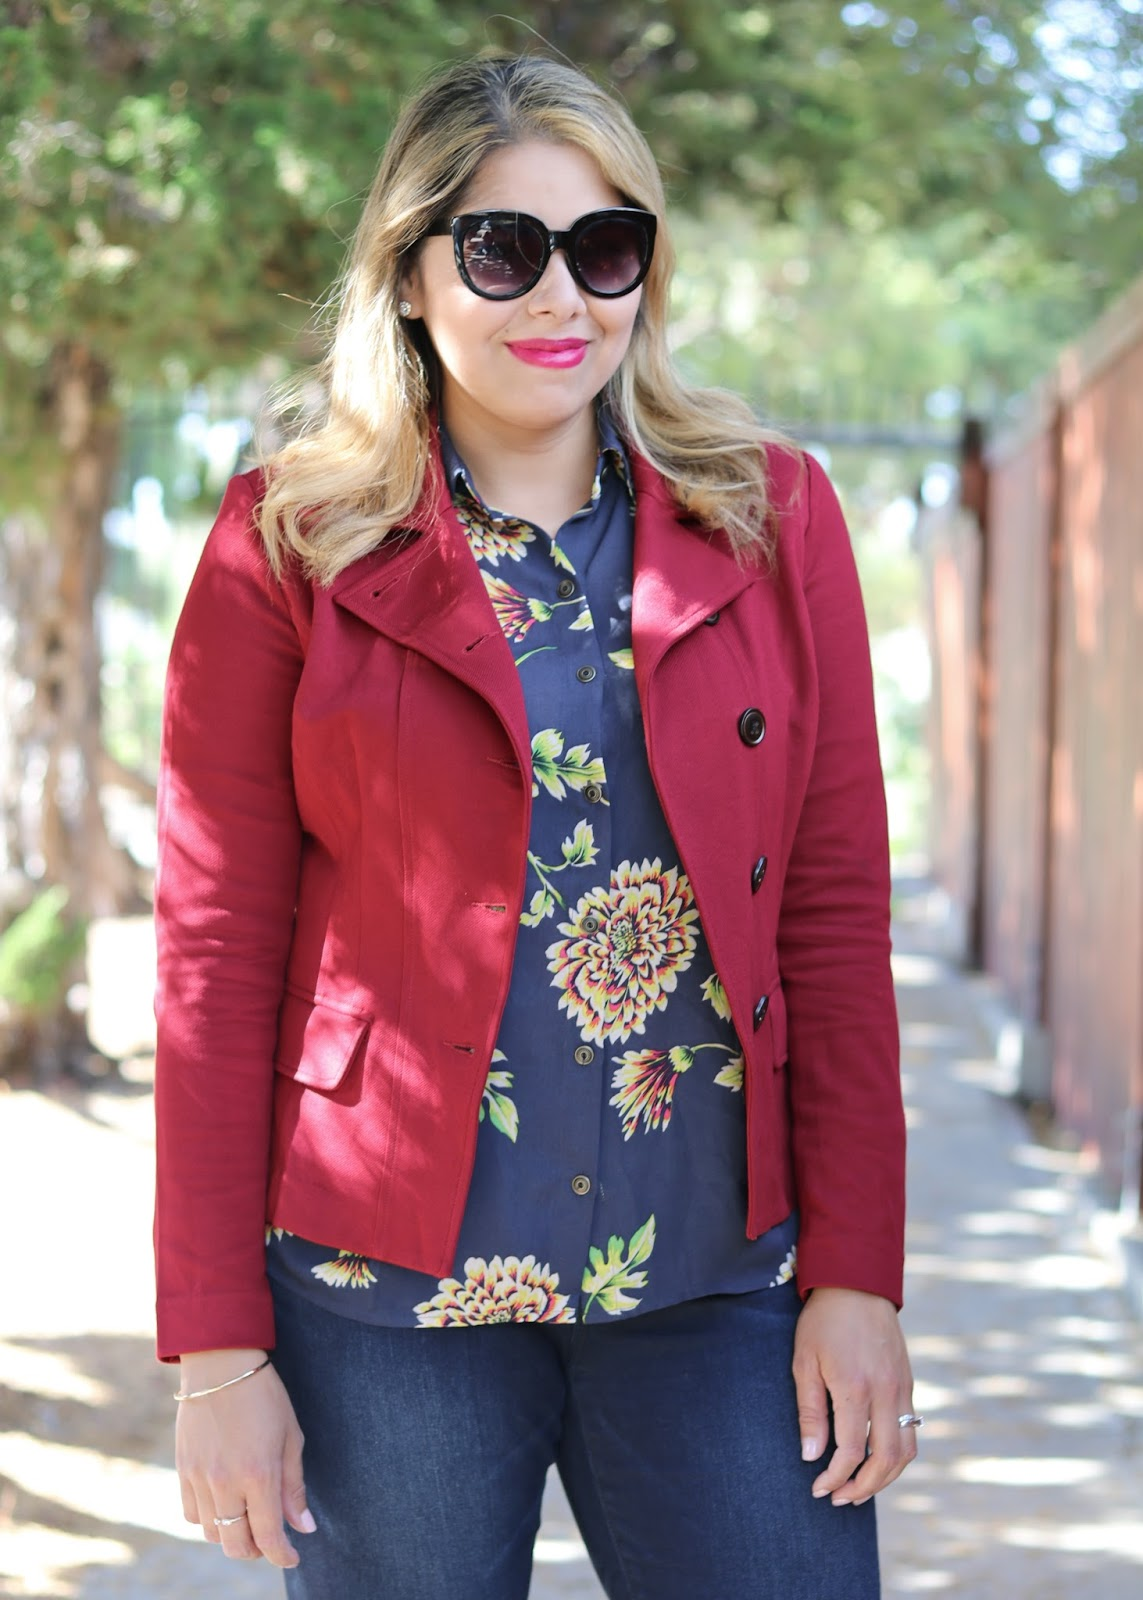 Fall floral blouse, san diego street style, san diego chic style, chic bloggers 2016